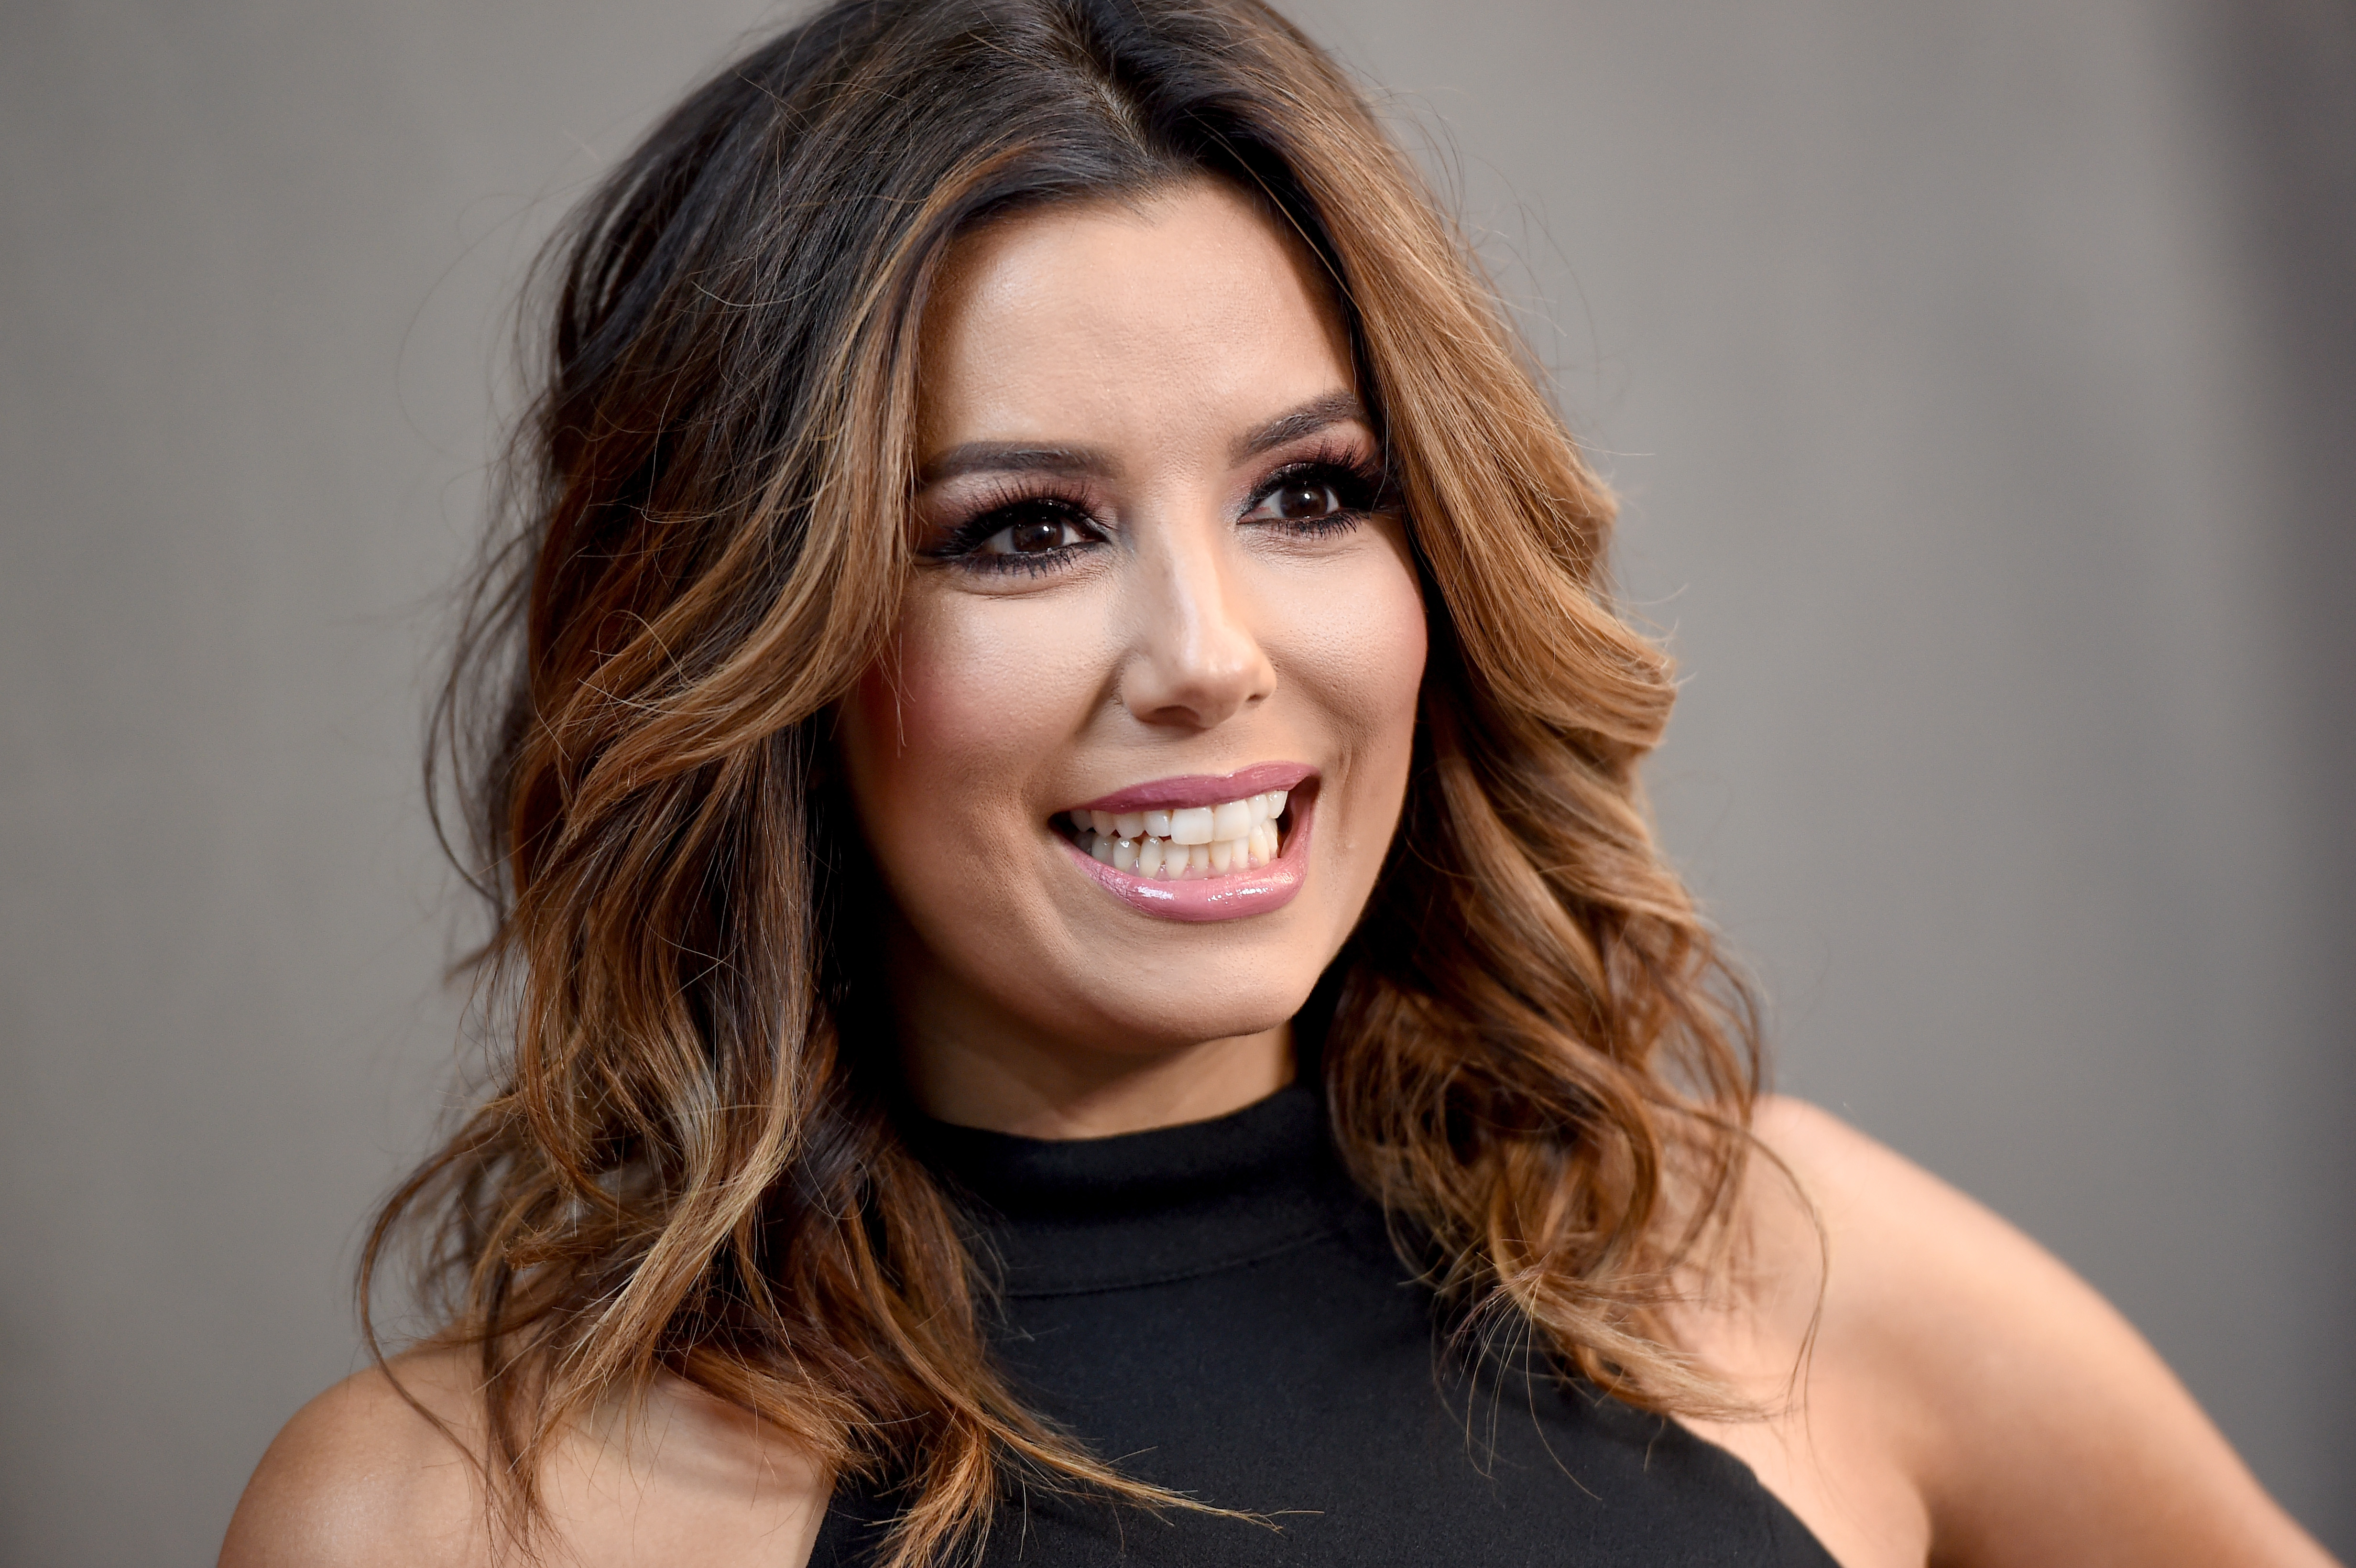 Eva Longoria to Produce Remake of 'Gran Hotel,' Spain's 'Downton Abbey'